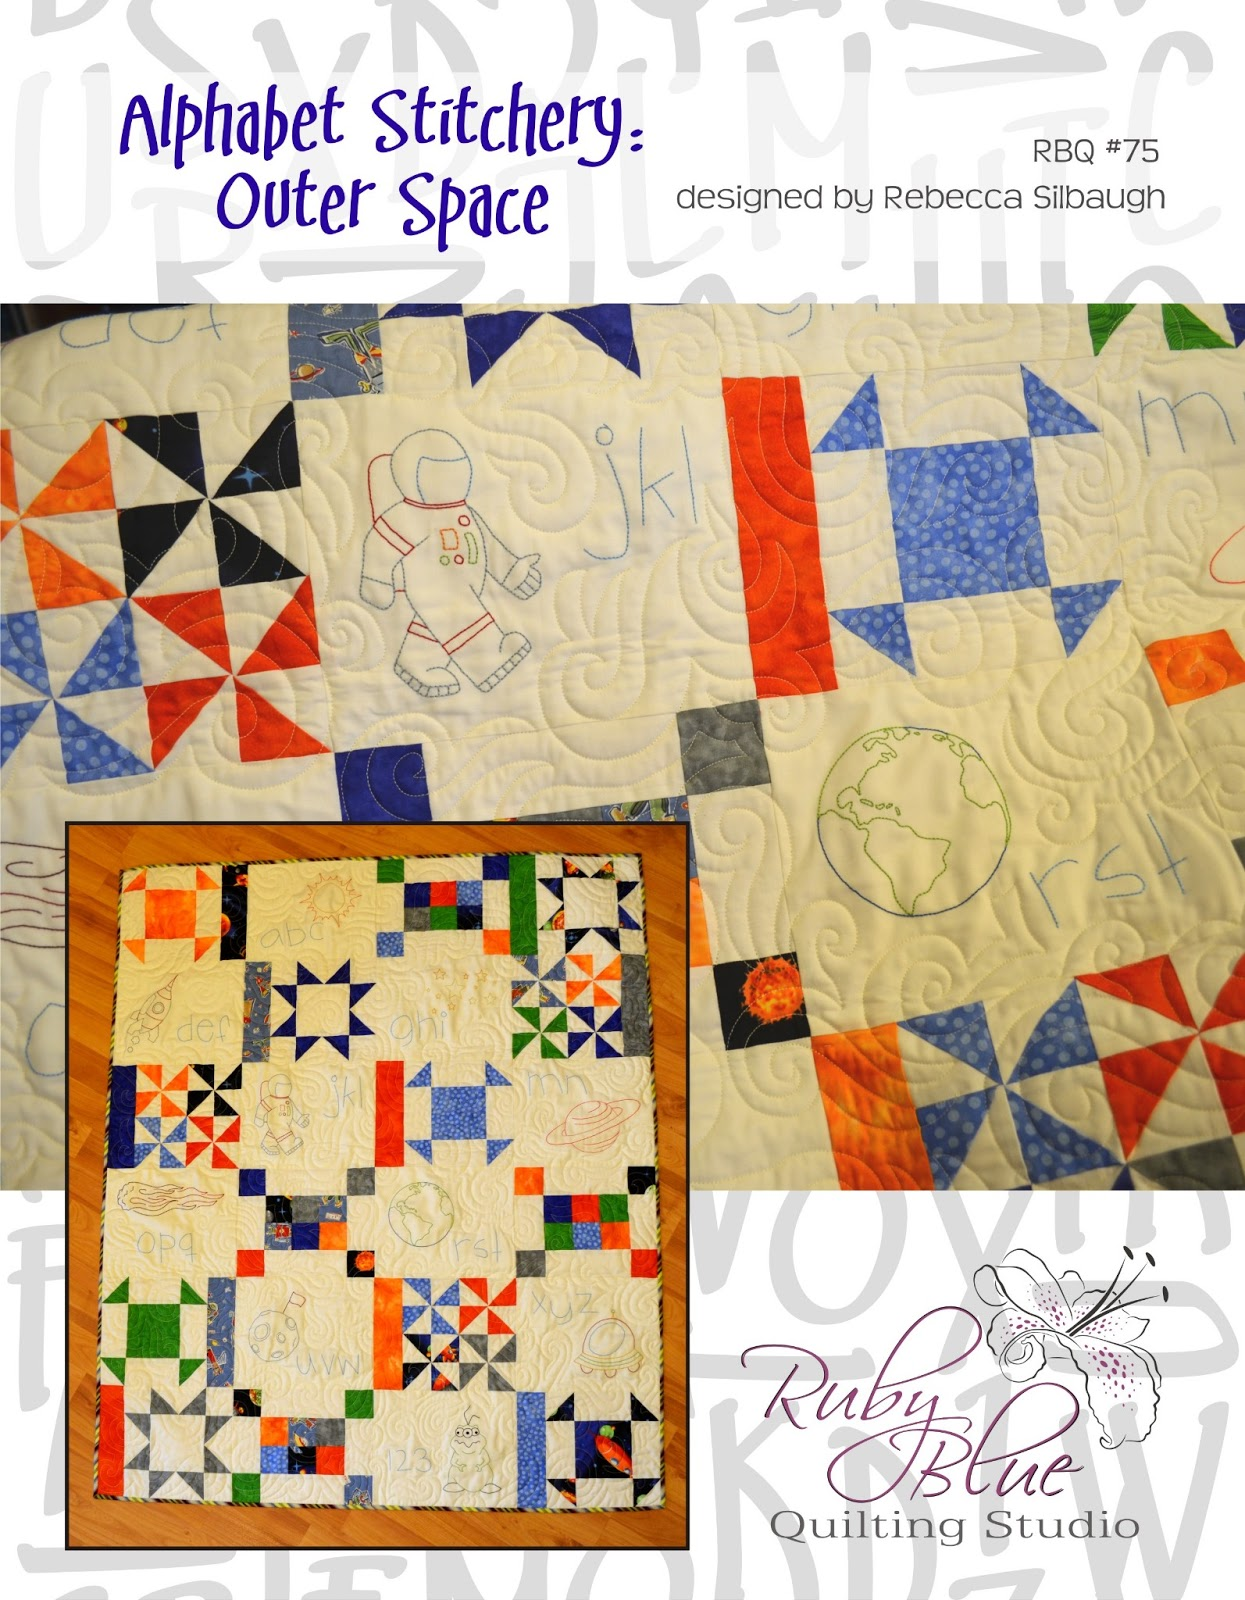 Ruby blue quilting studio patterns for Outer space quilt patterns